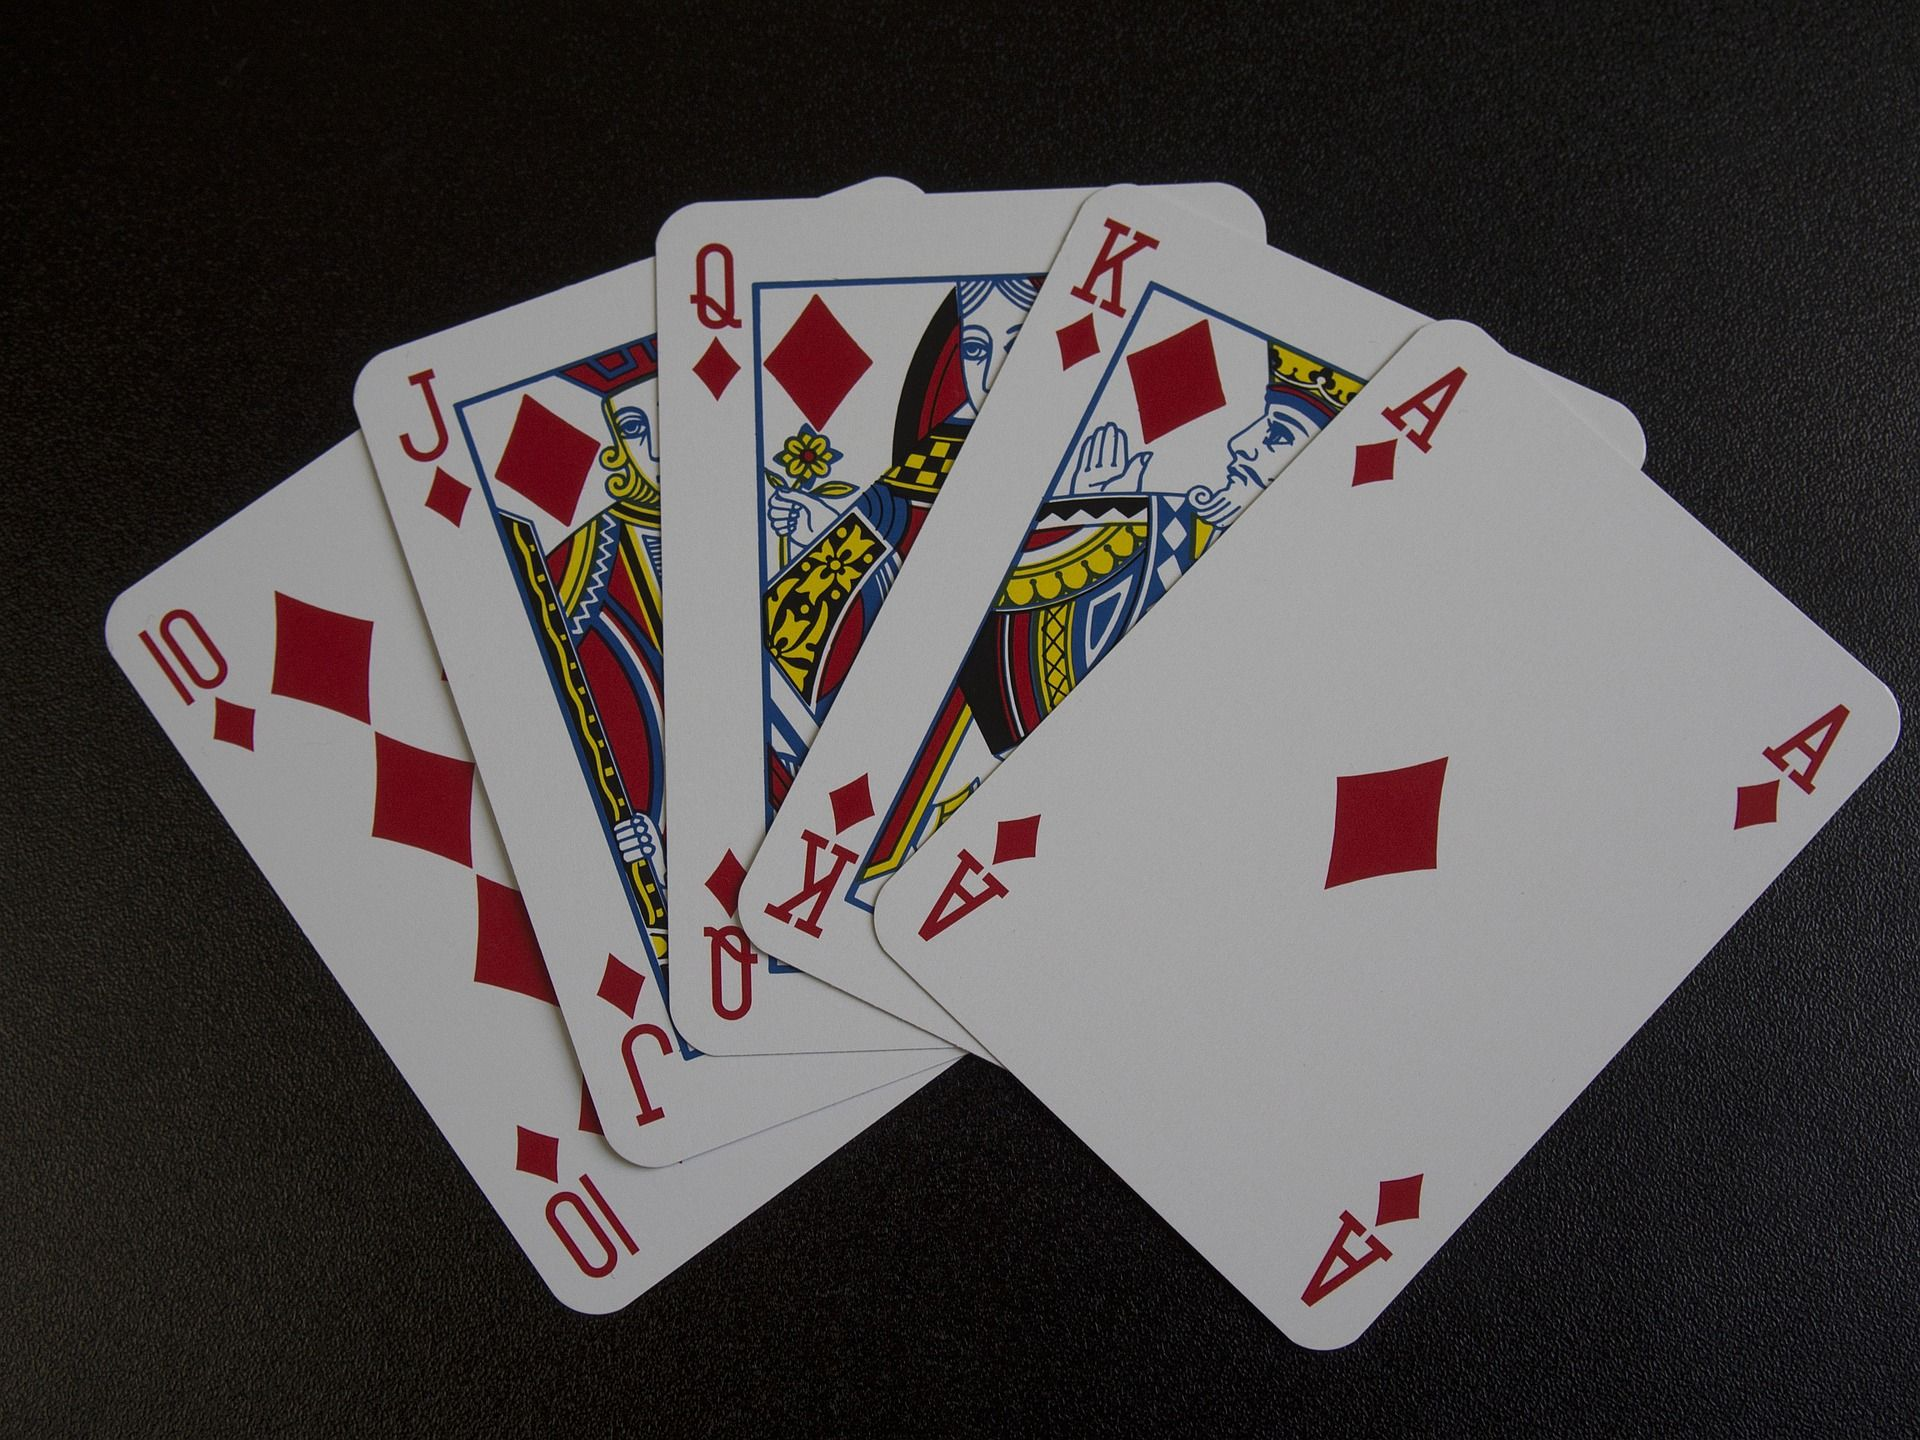 By NGi on Pixabay List of card games, Playing cards, Poker